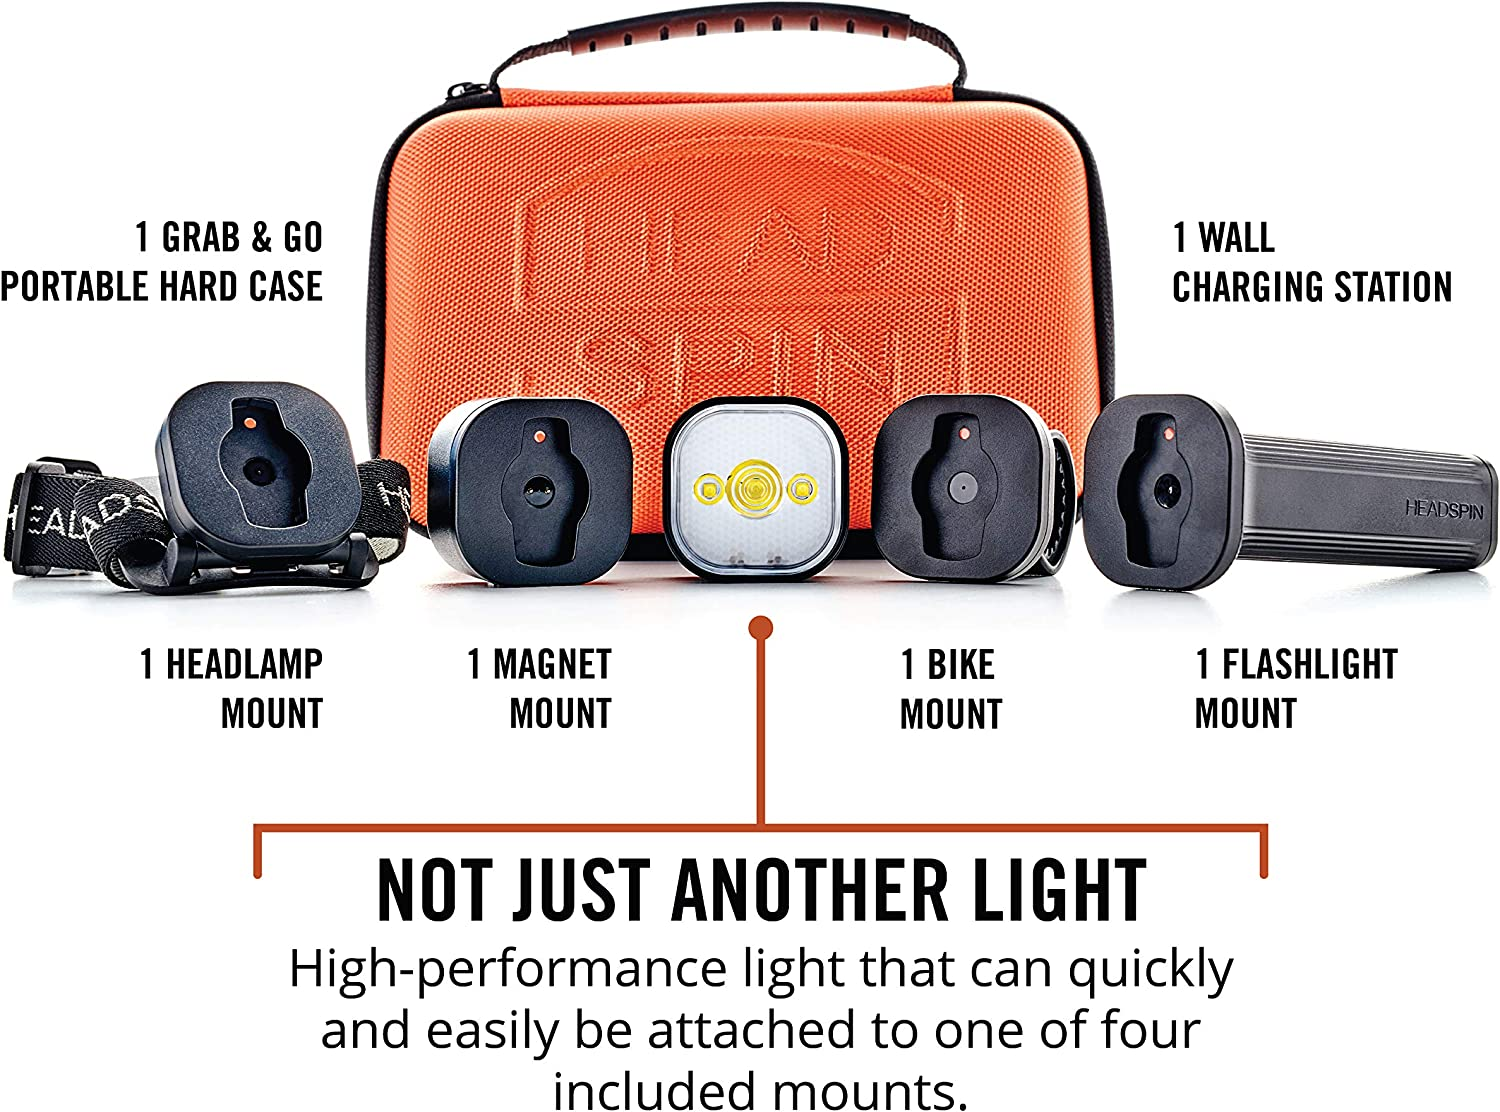 HEADSPIN Outdoors Convertible Lighting System – Headlamp, Flashlight, Bike Light, Rail Light, or Magnetic Light All mounts Included in Kit – Rechargeable and Weatherproof